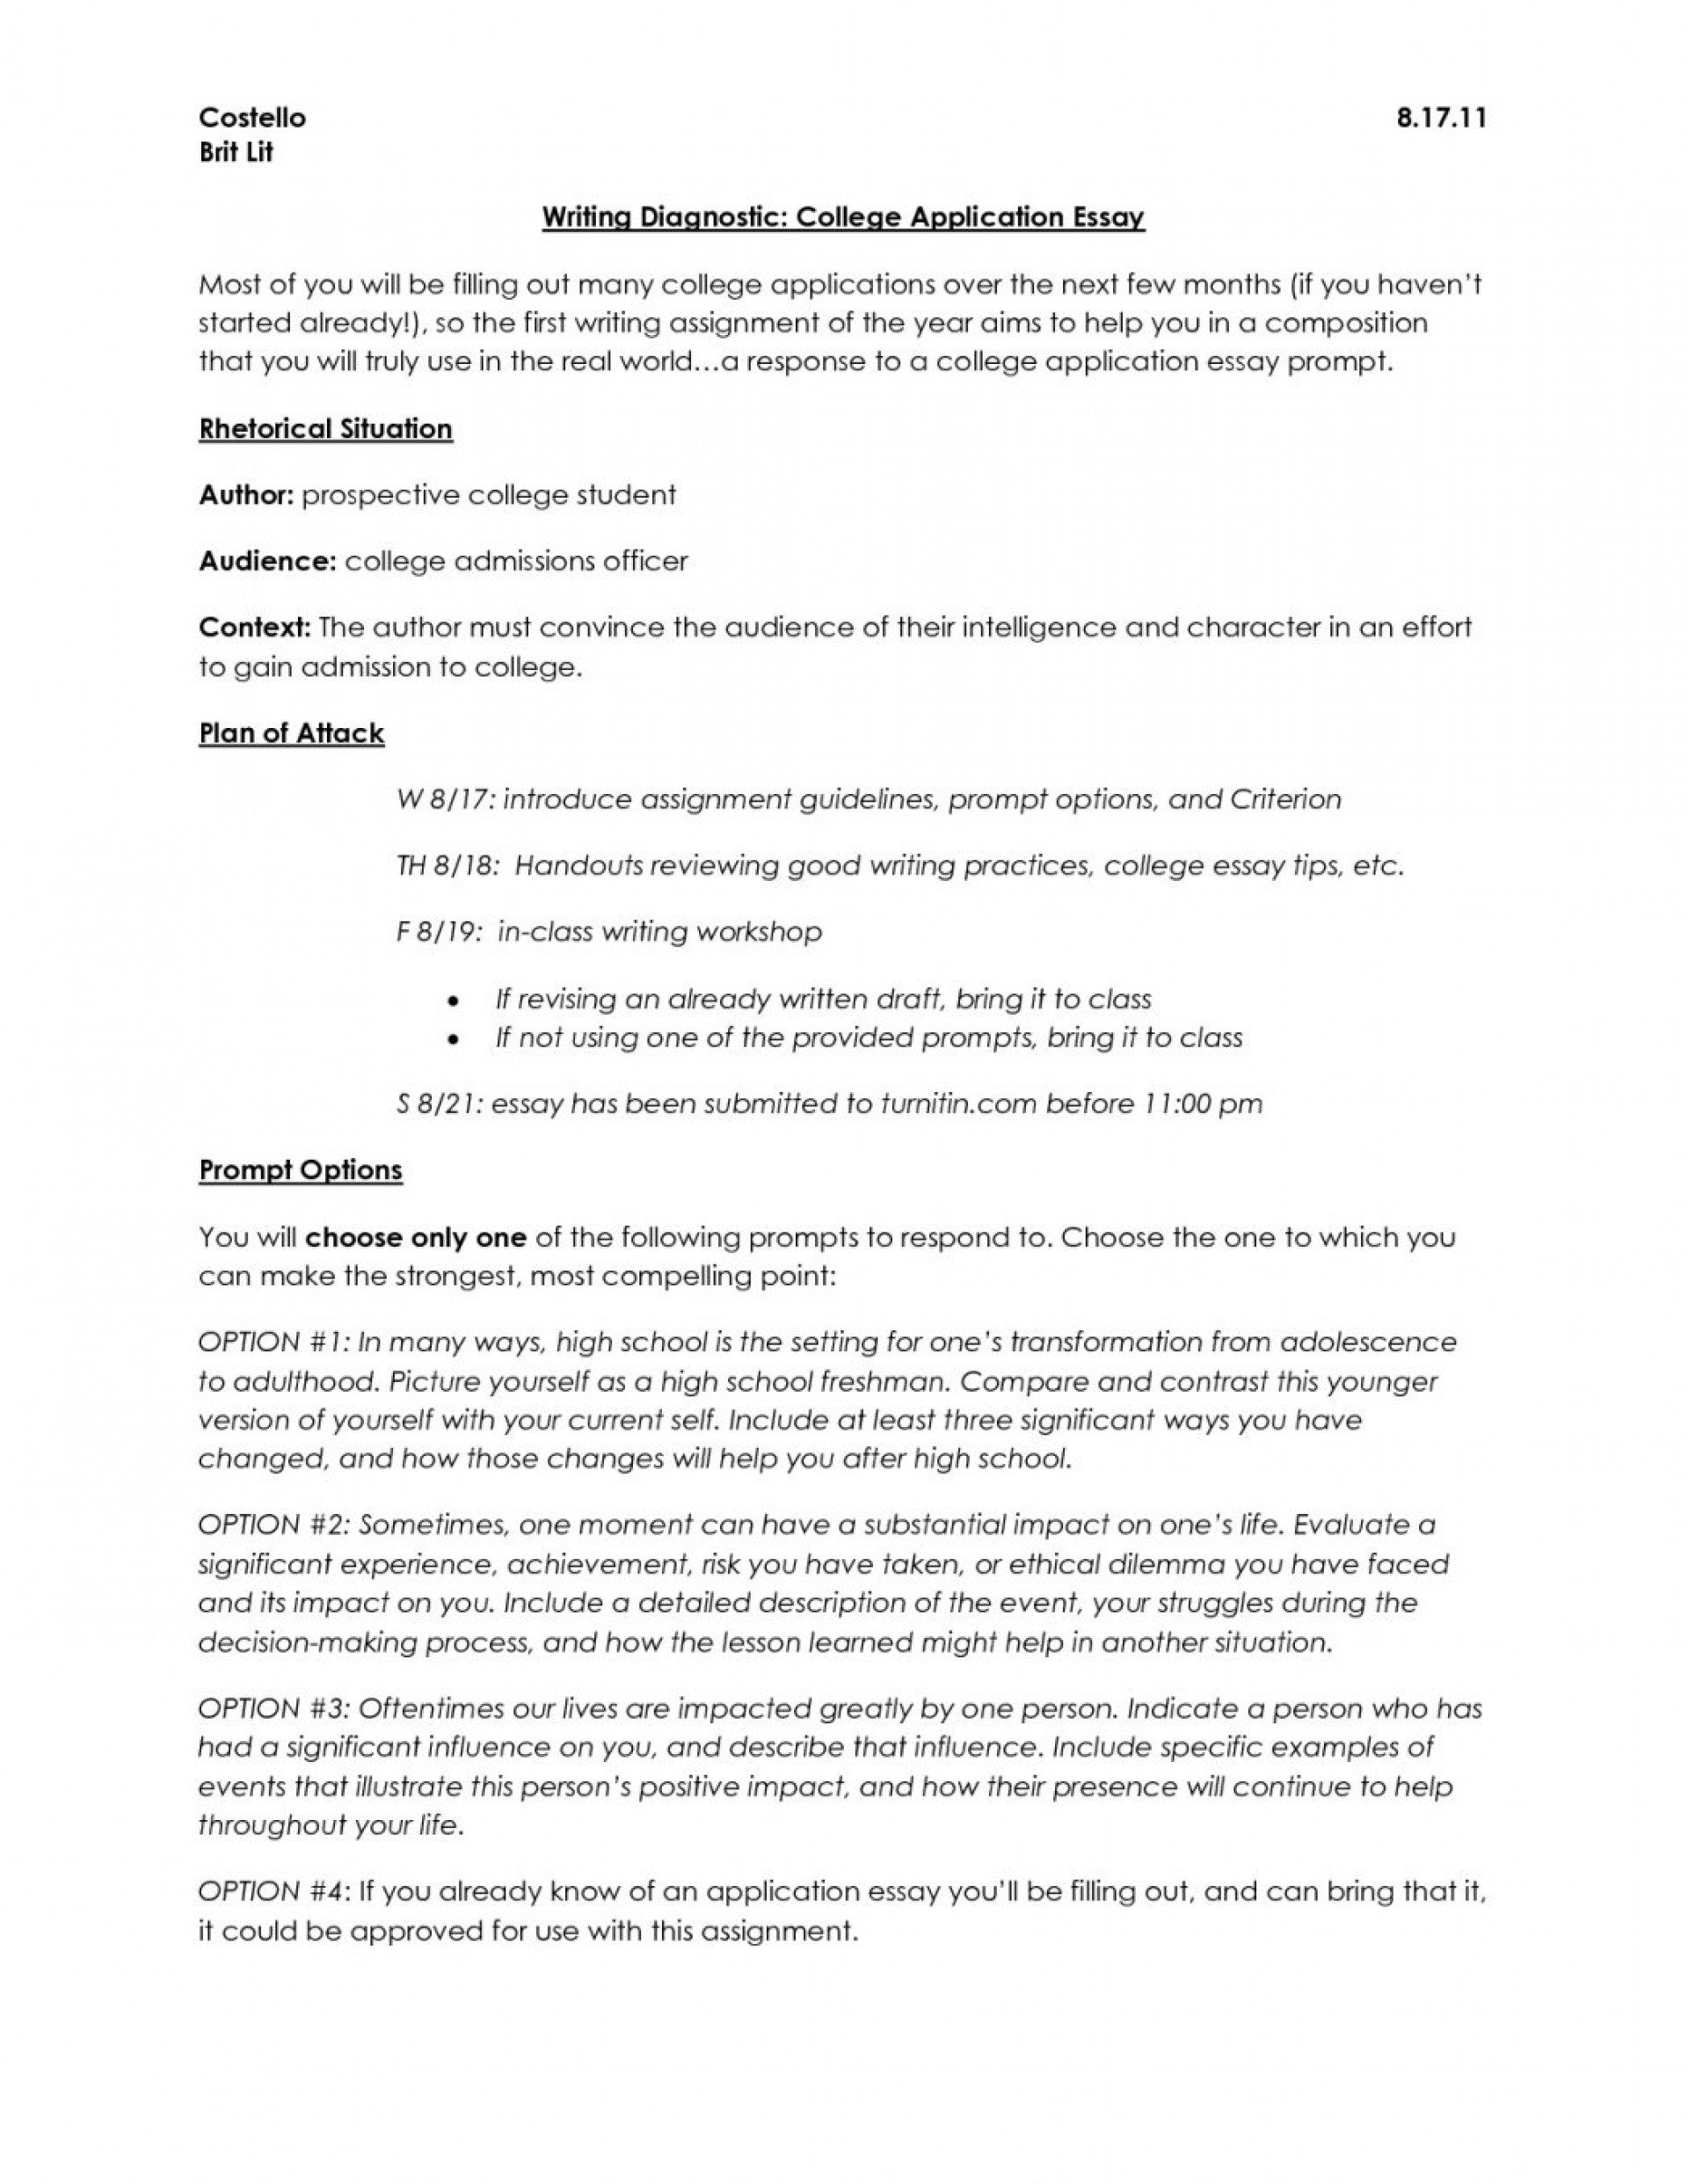 023 Common Application Essay Format Writings And Essays College Prompts Hospi Noiseworks Co Rega App Admission Topicss 1048x1356 How Many Do You Write Amazing Should 1920